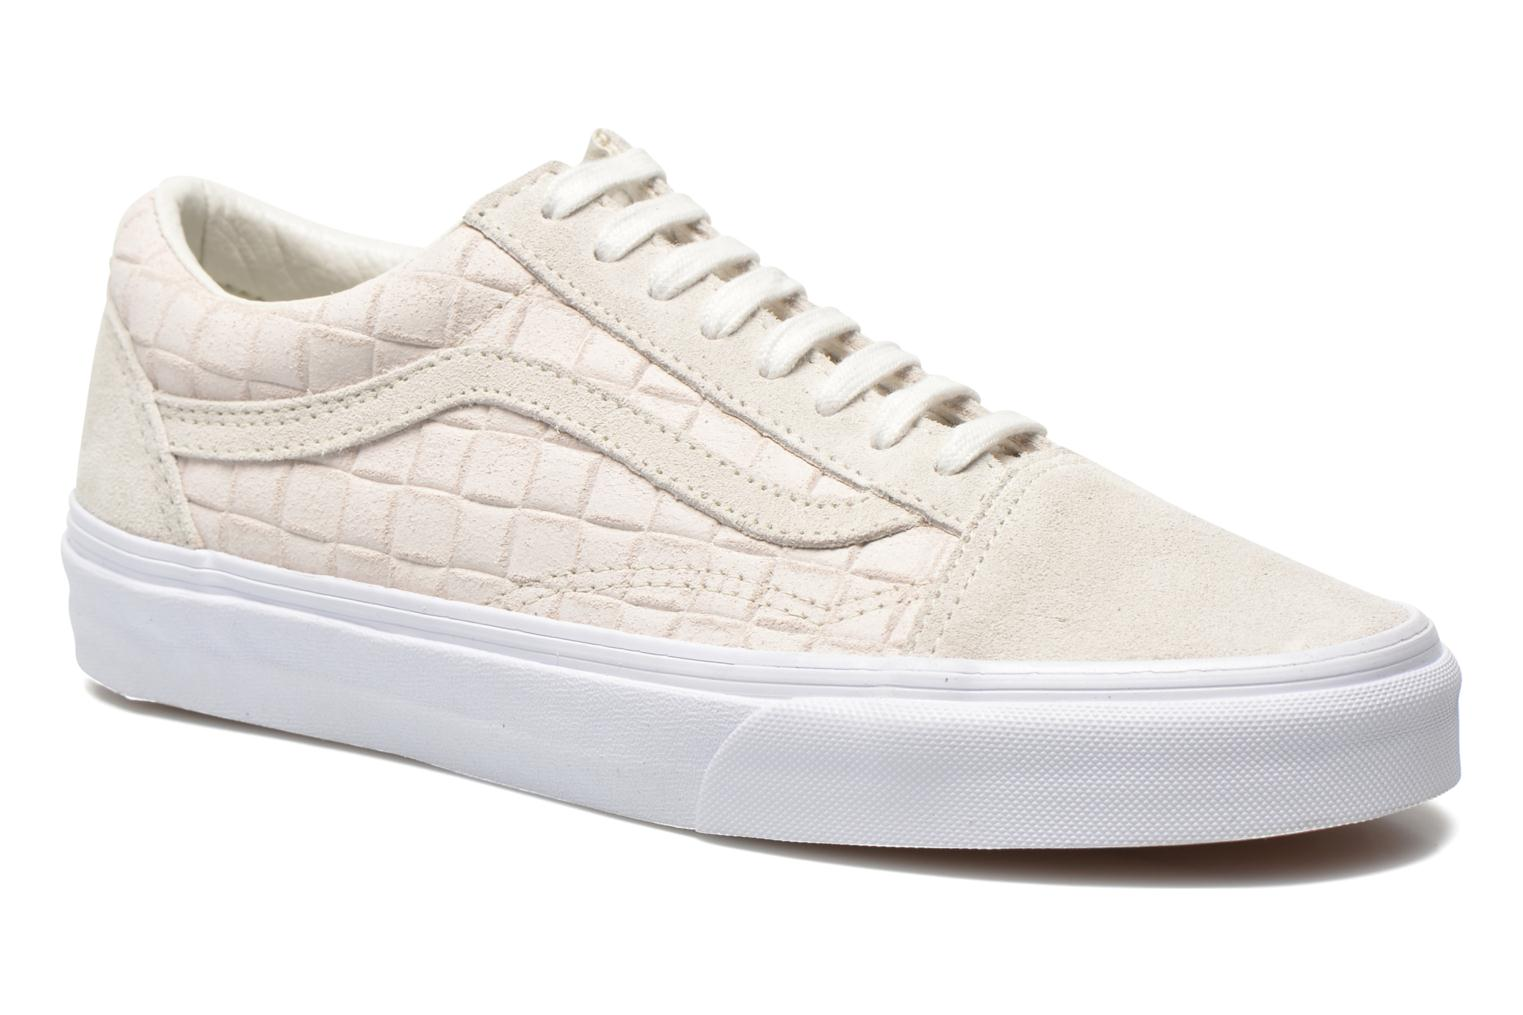 Old Skool (Suede Checkers) White